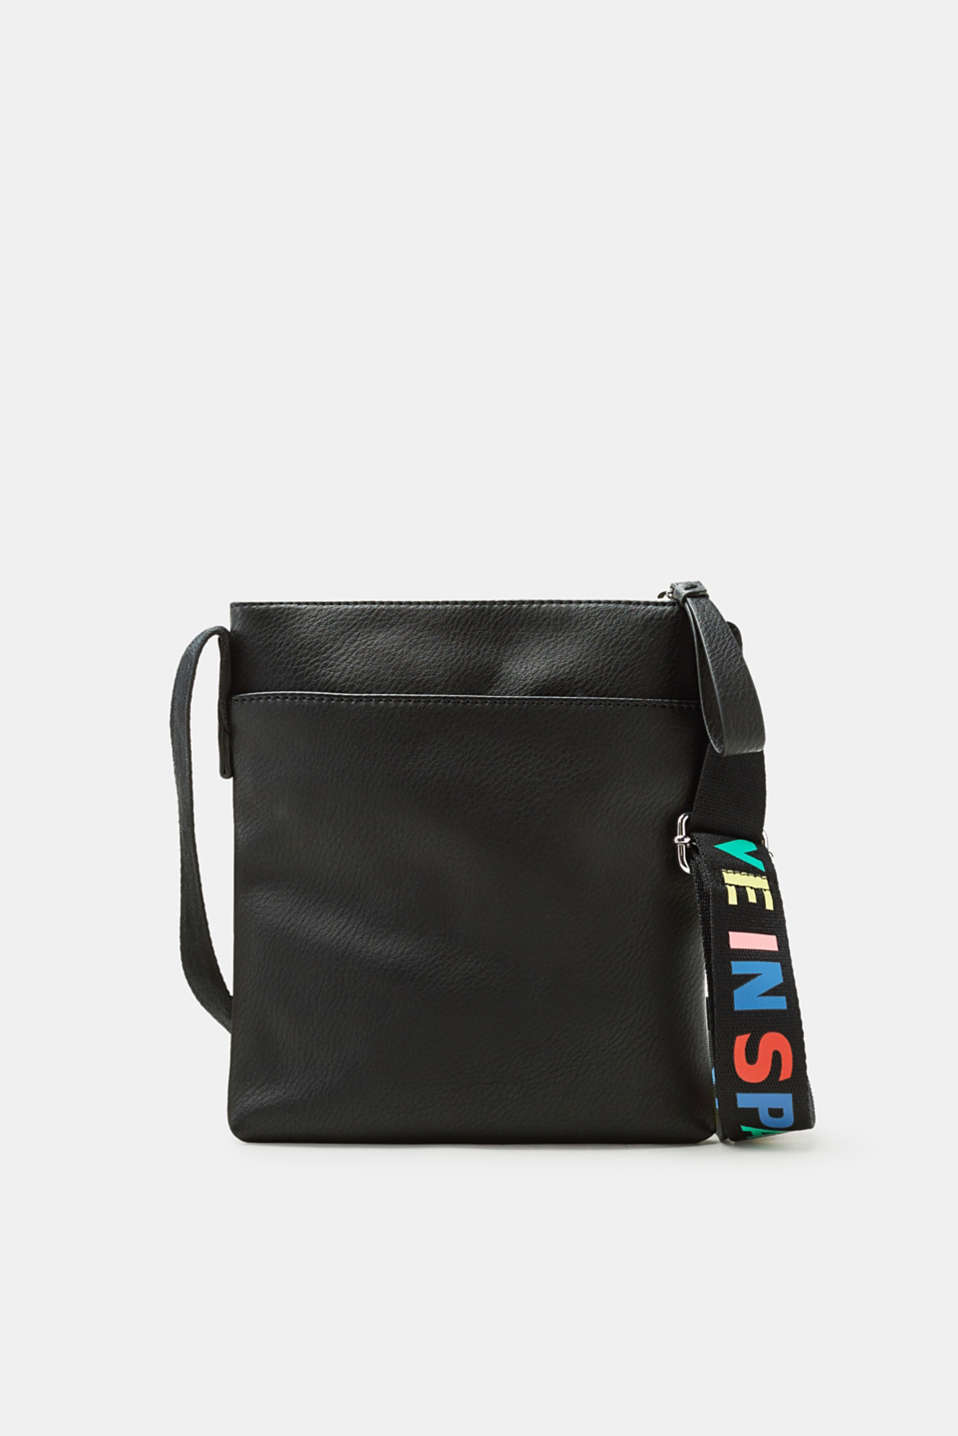 edc - Small shoulder bag with a statement strap